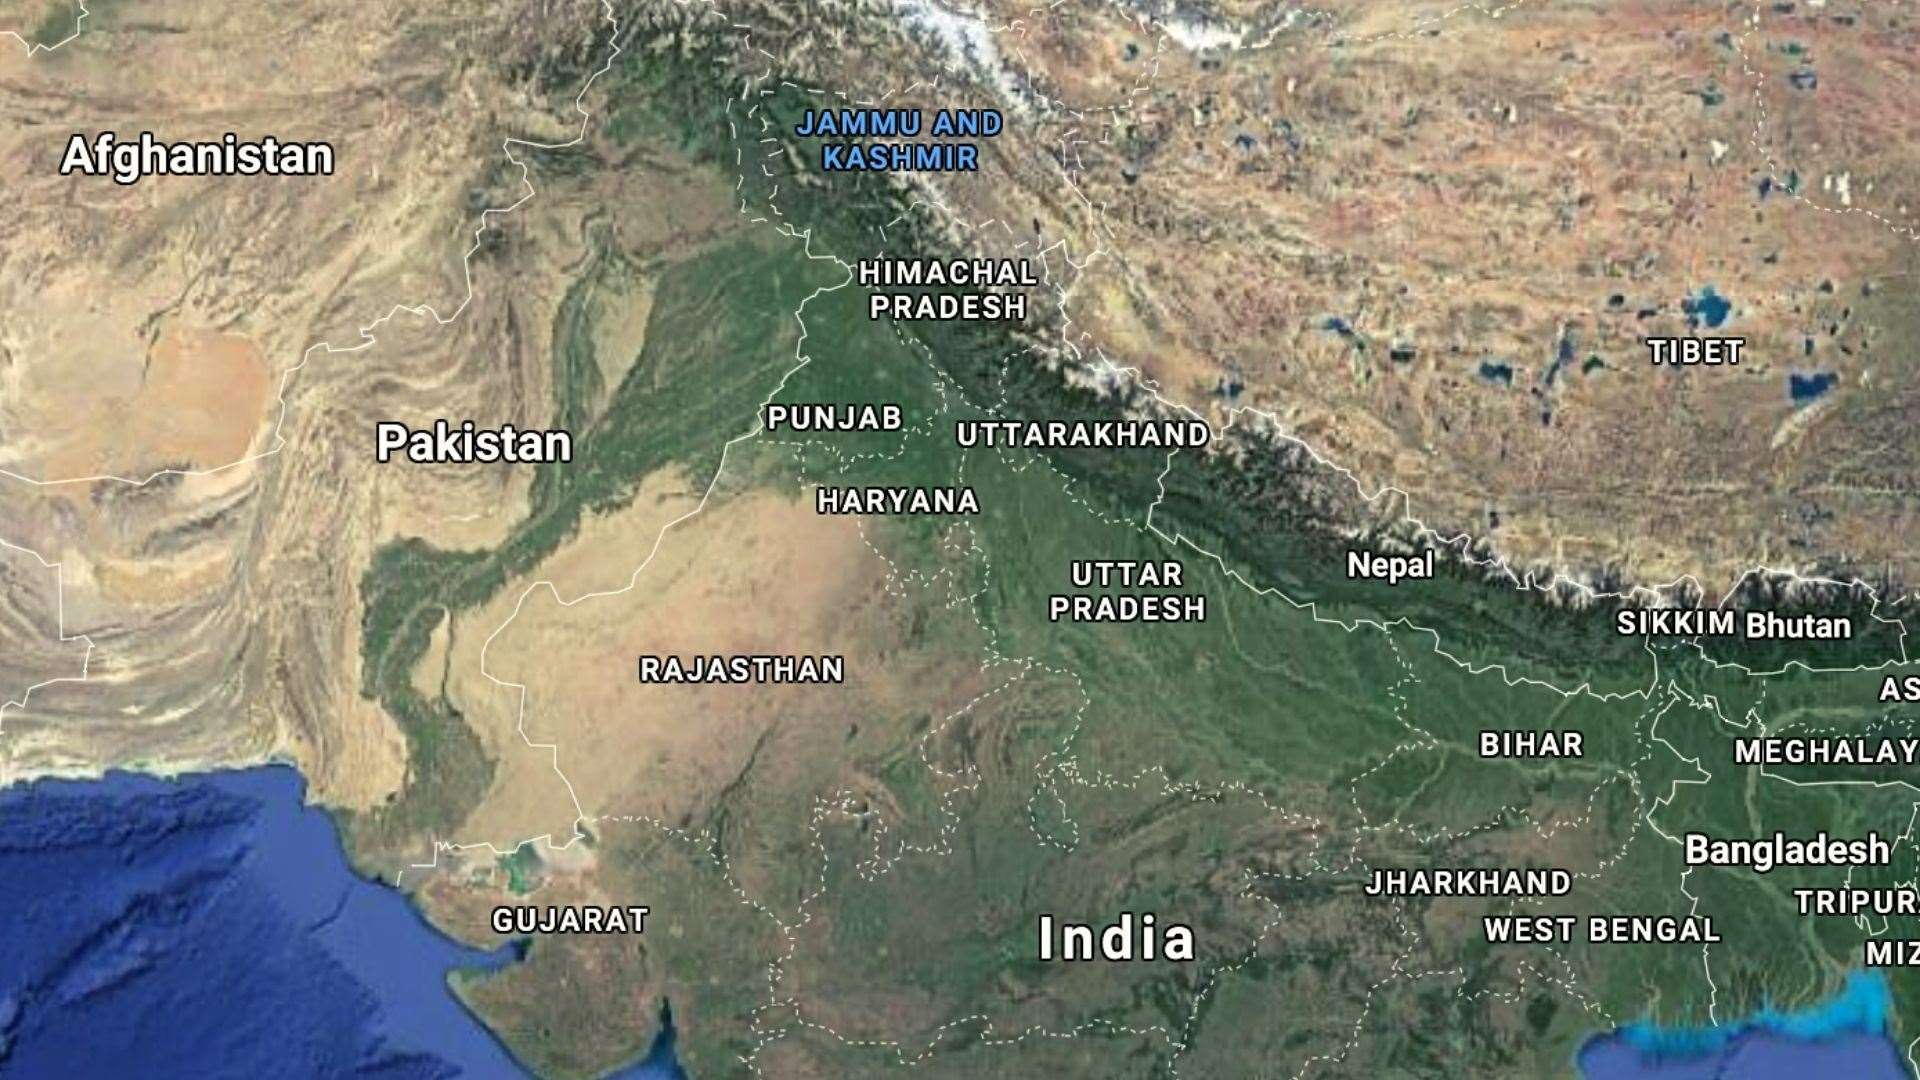 Jammu and Kashmir is nestled between Pakistan and India. Pic: Google Maps